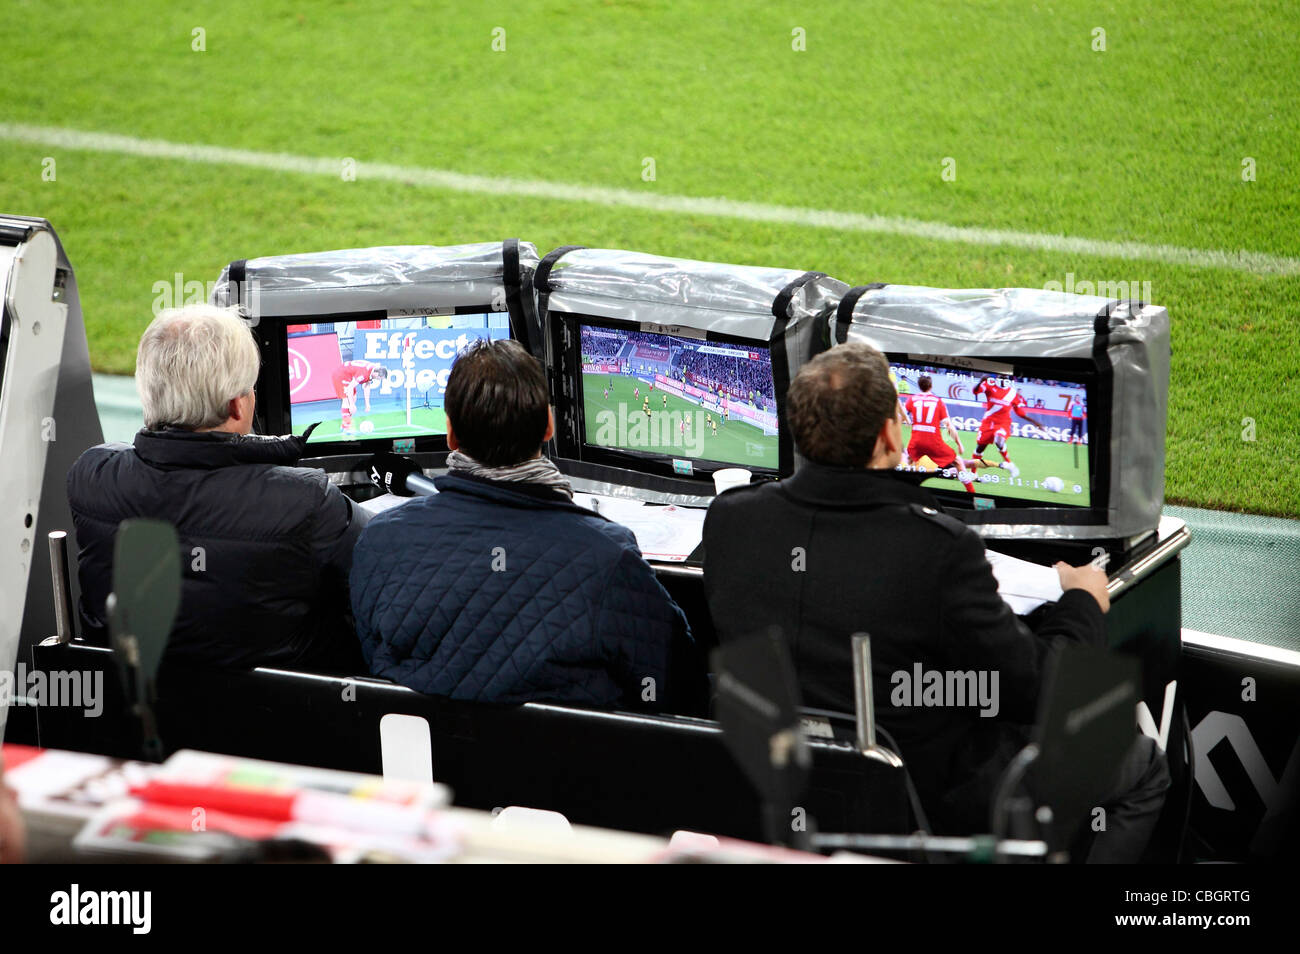 TV crew, production team during a football game in a sports station. Managing the TV images. - Stock Image